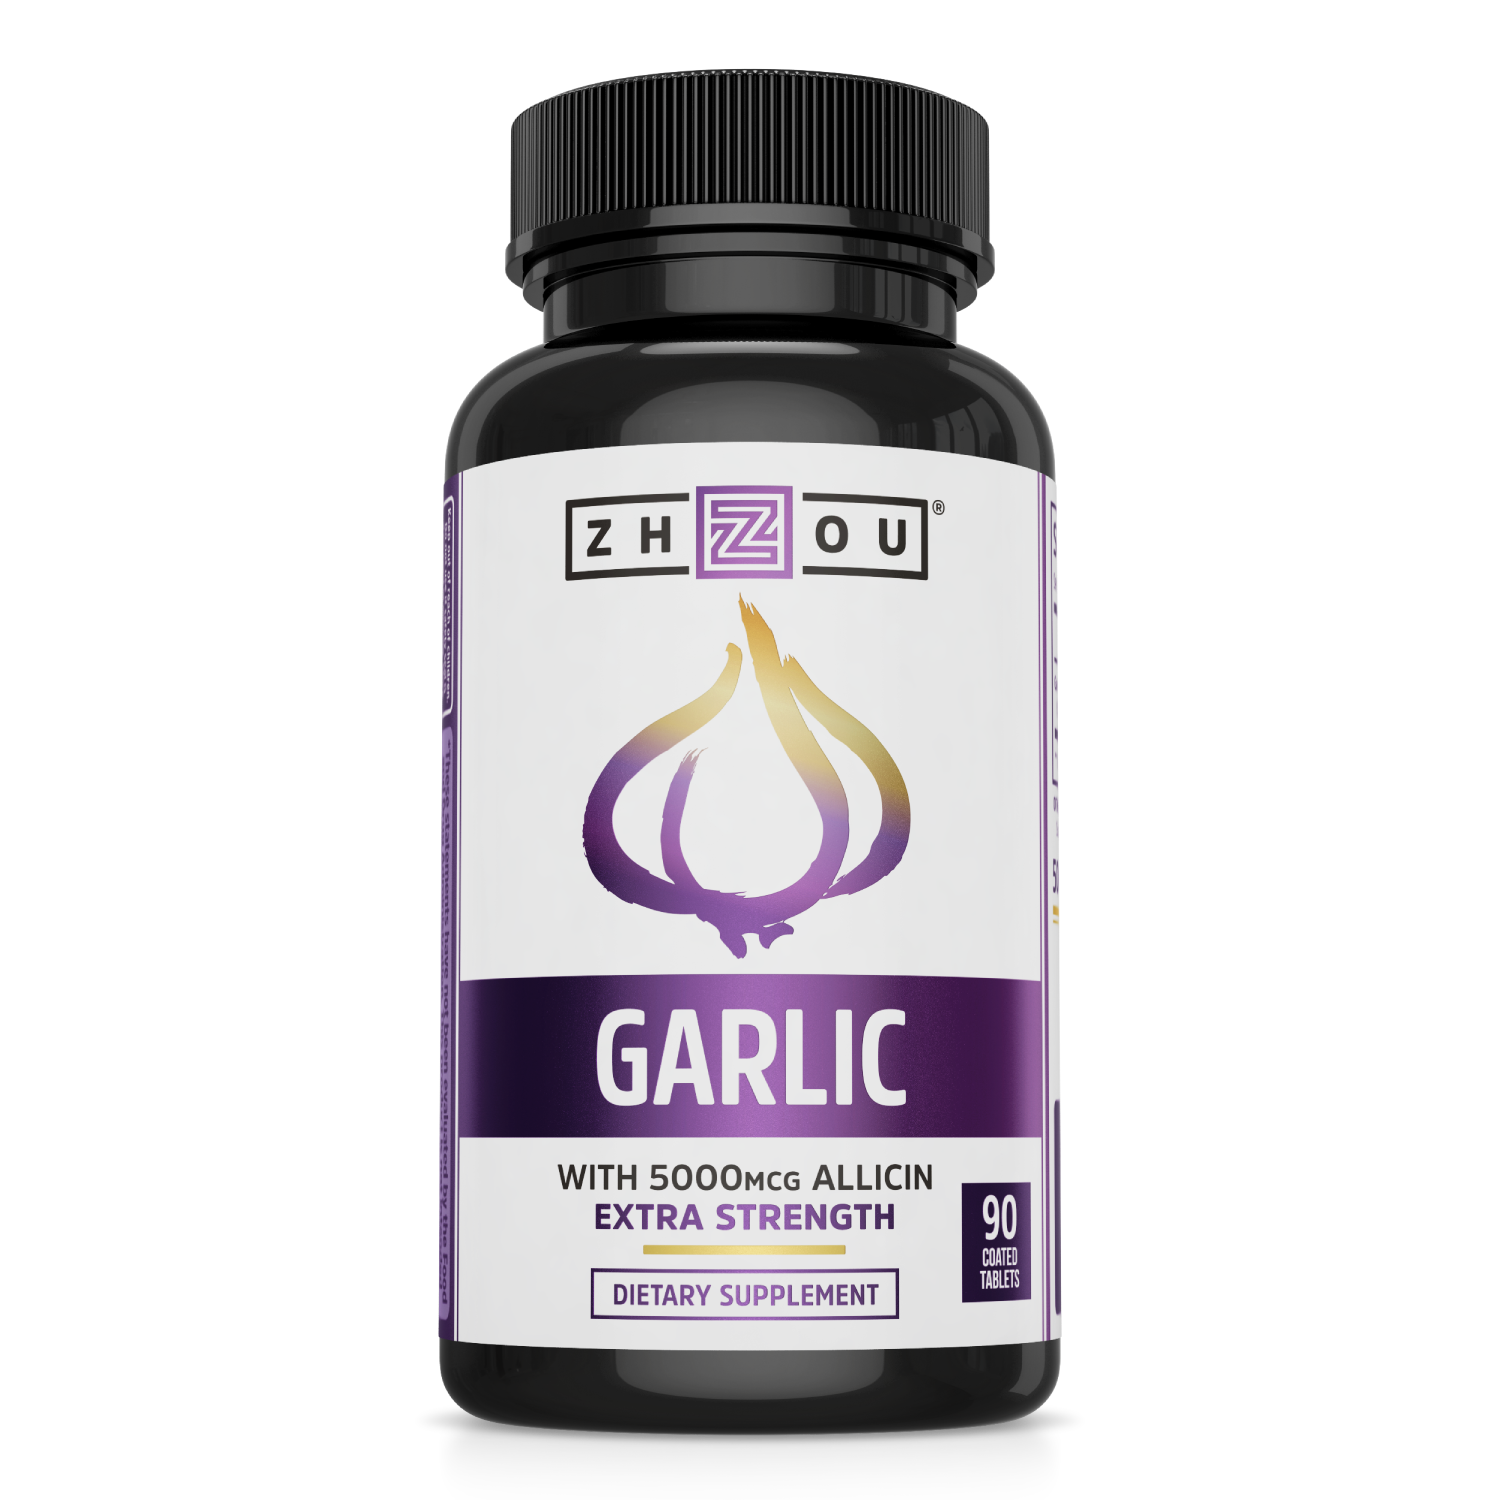 Garlic with 5000mcg Allicin from Zhou Nutrition. Bottle front.